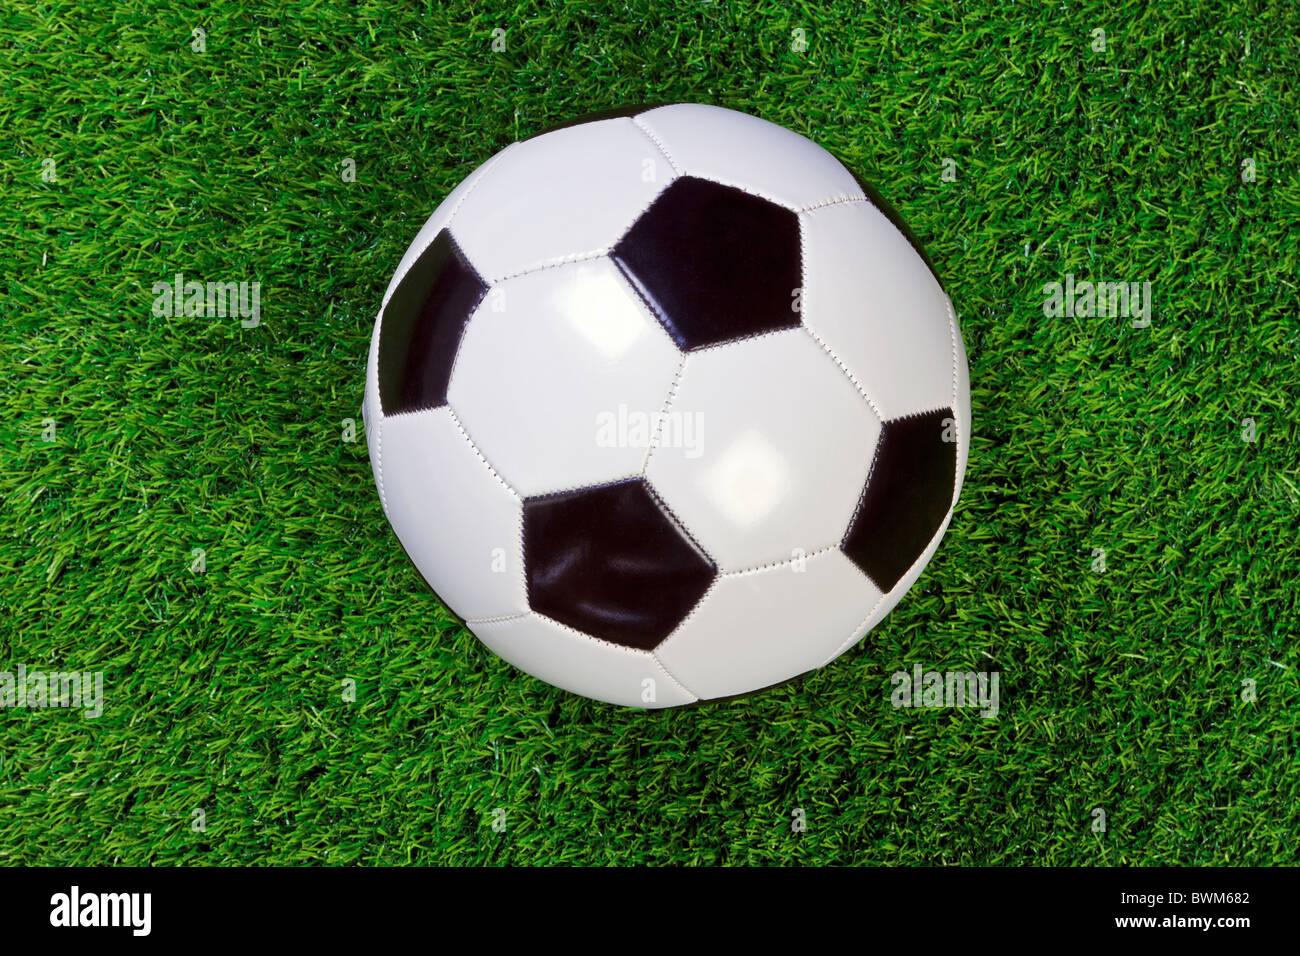 A white and black chequered leather football or soccer ball on grass. - Stock Image